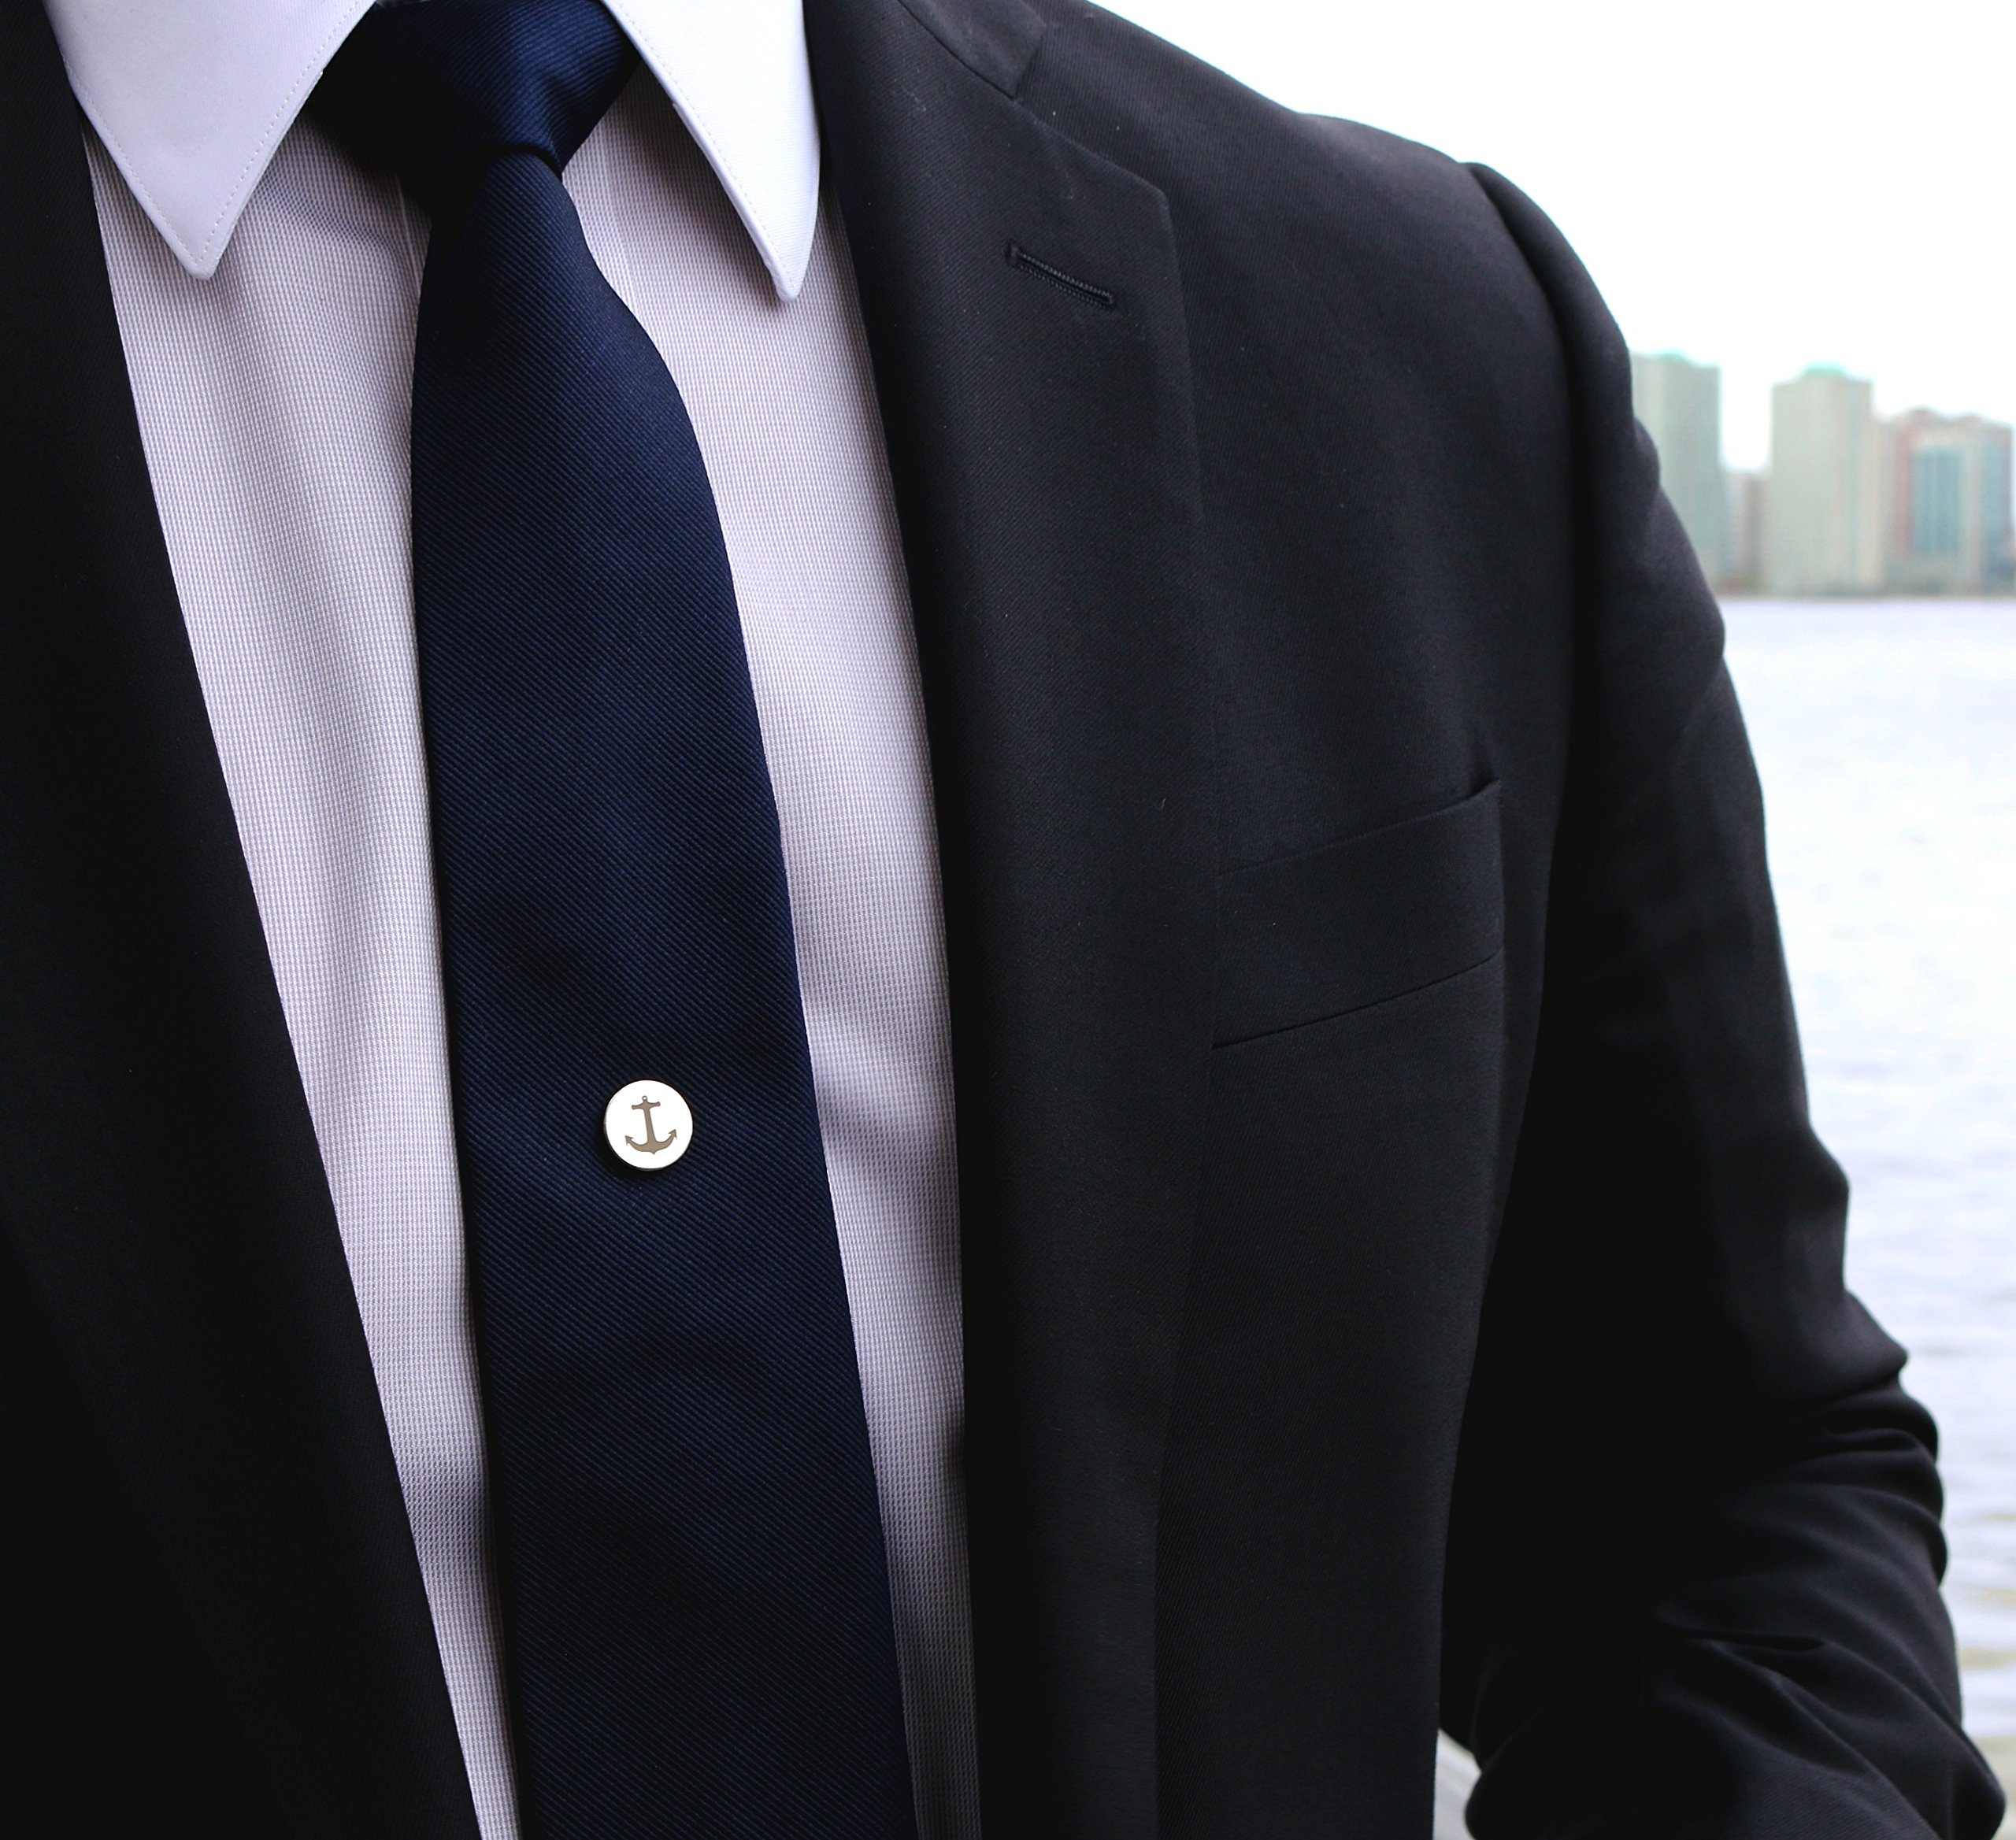 Tie Mags, The Nautical Anchor, Magnetic Tie Clip by Tie Mags (Image #3)